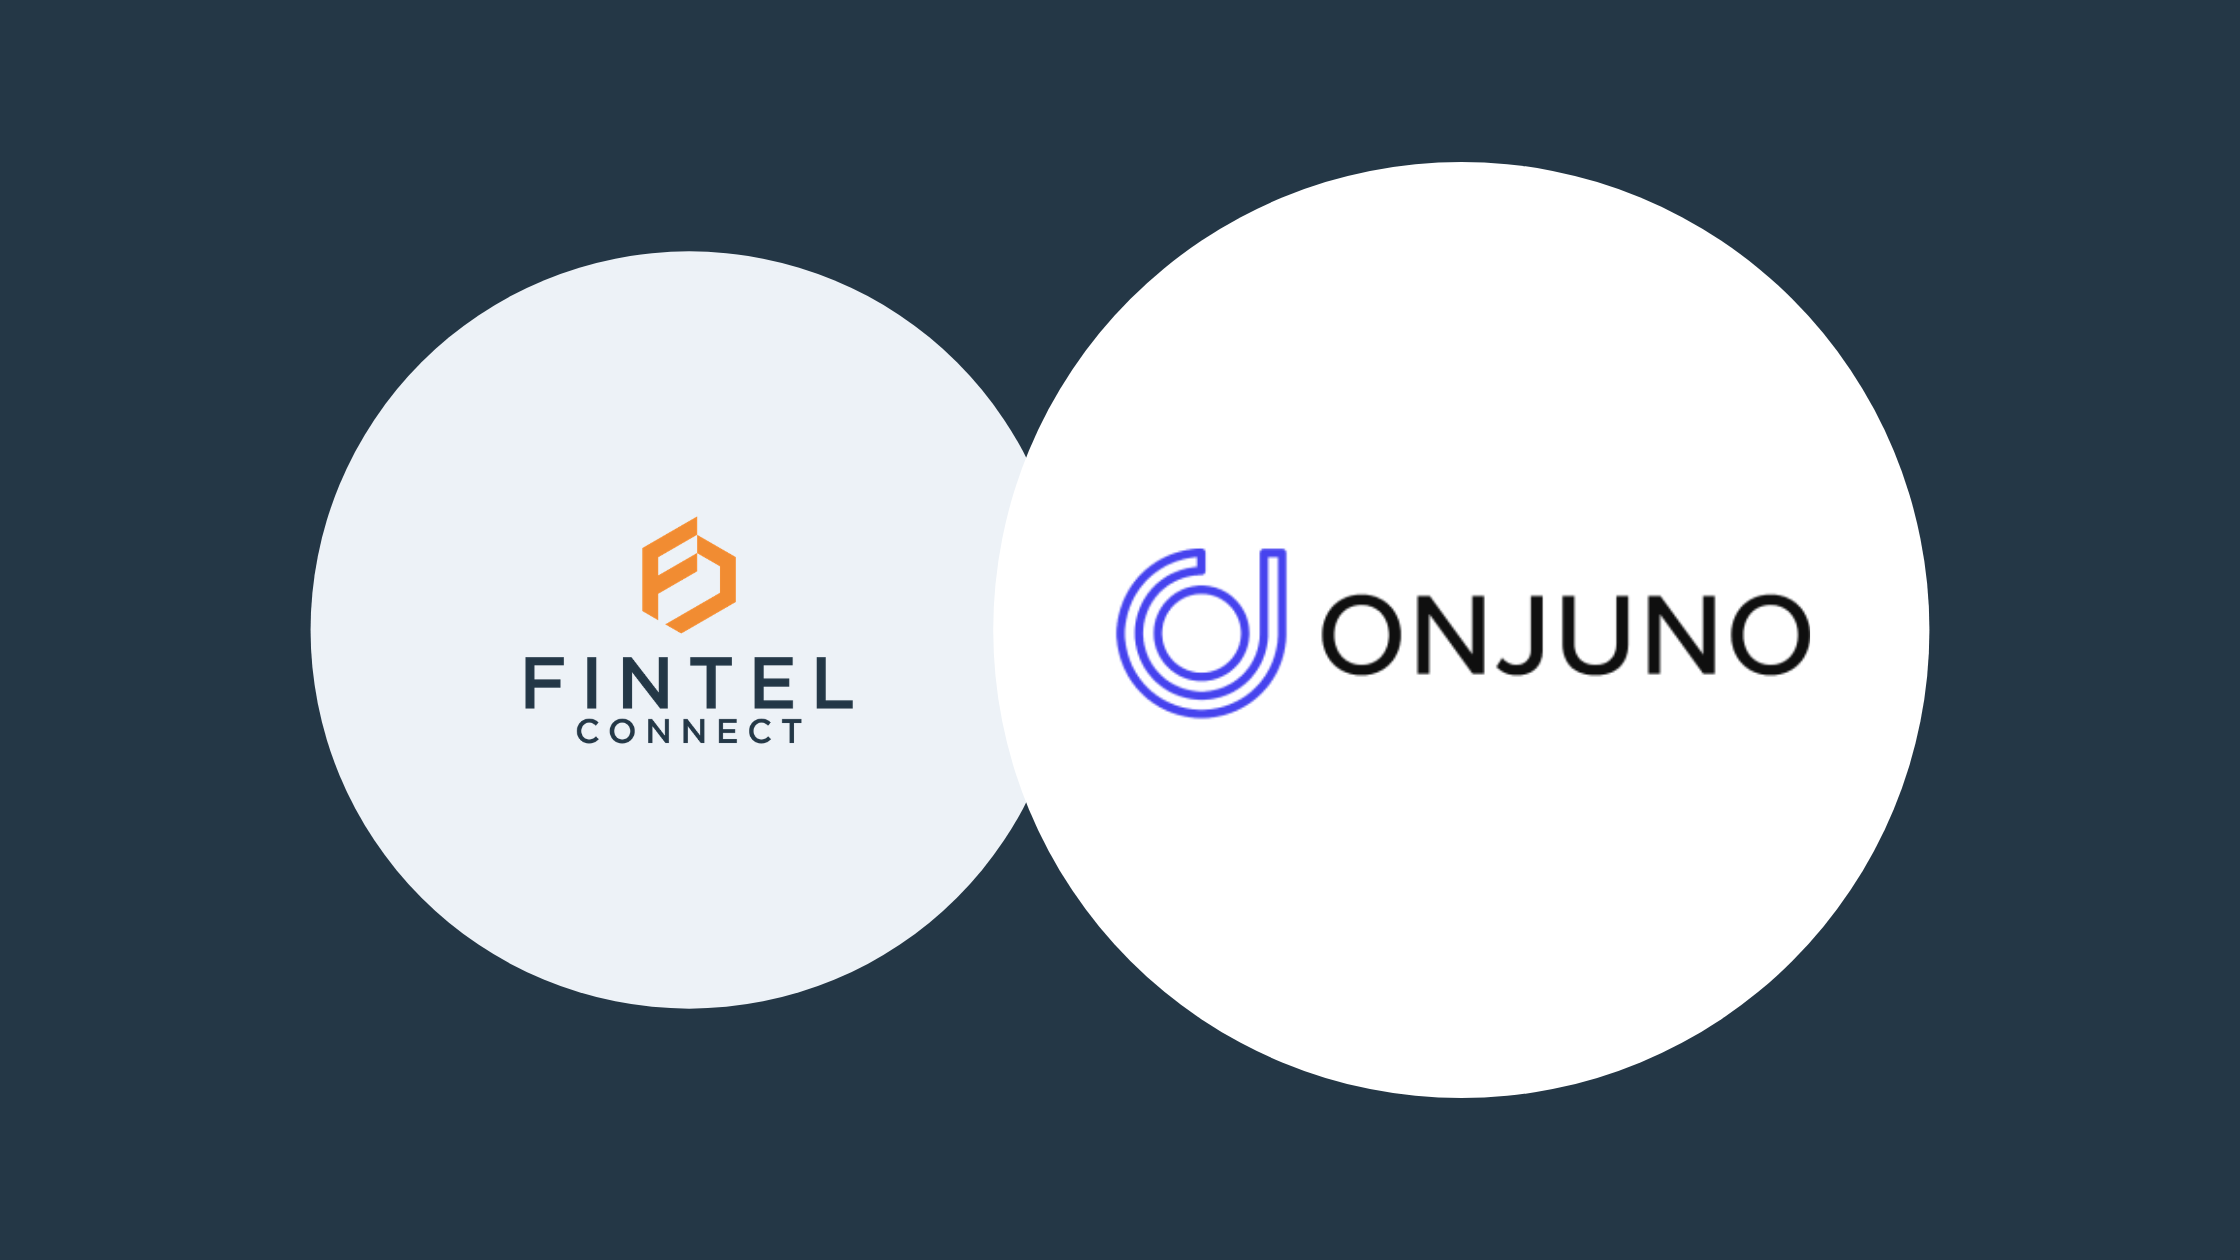 OnJuno Partners with Fintel Connect to Launch New Affiliate Program